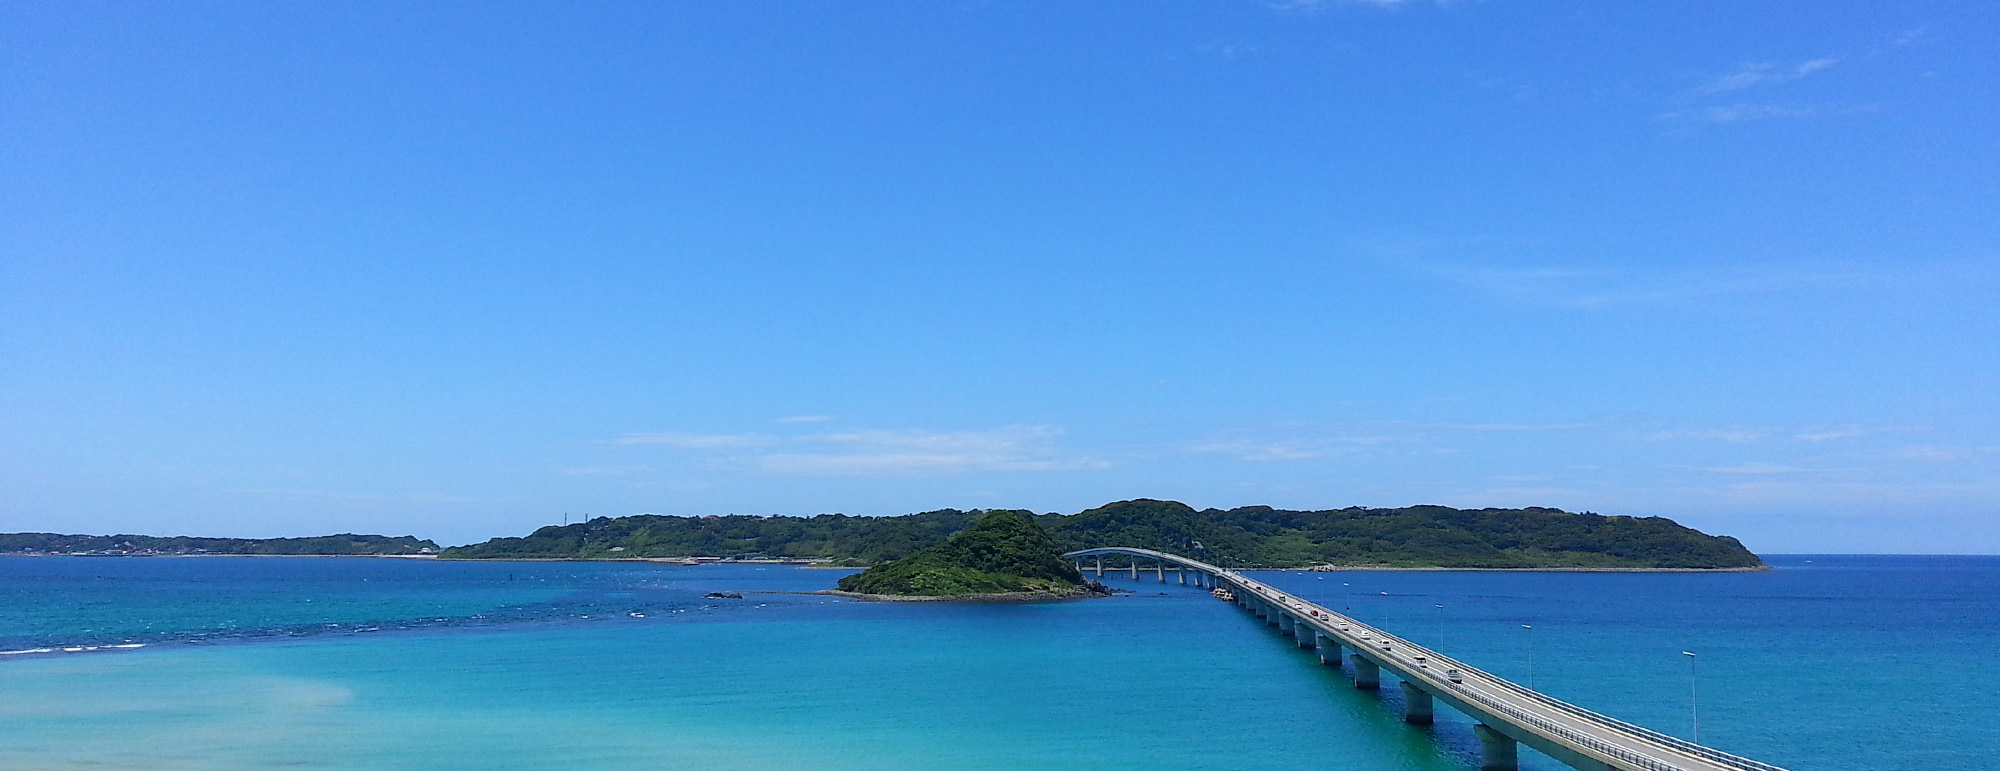 Tsunoshima Bridge's photo